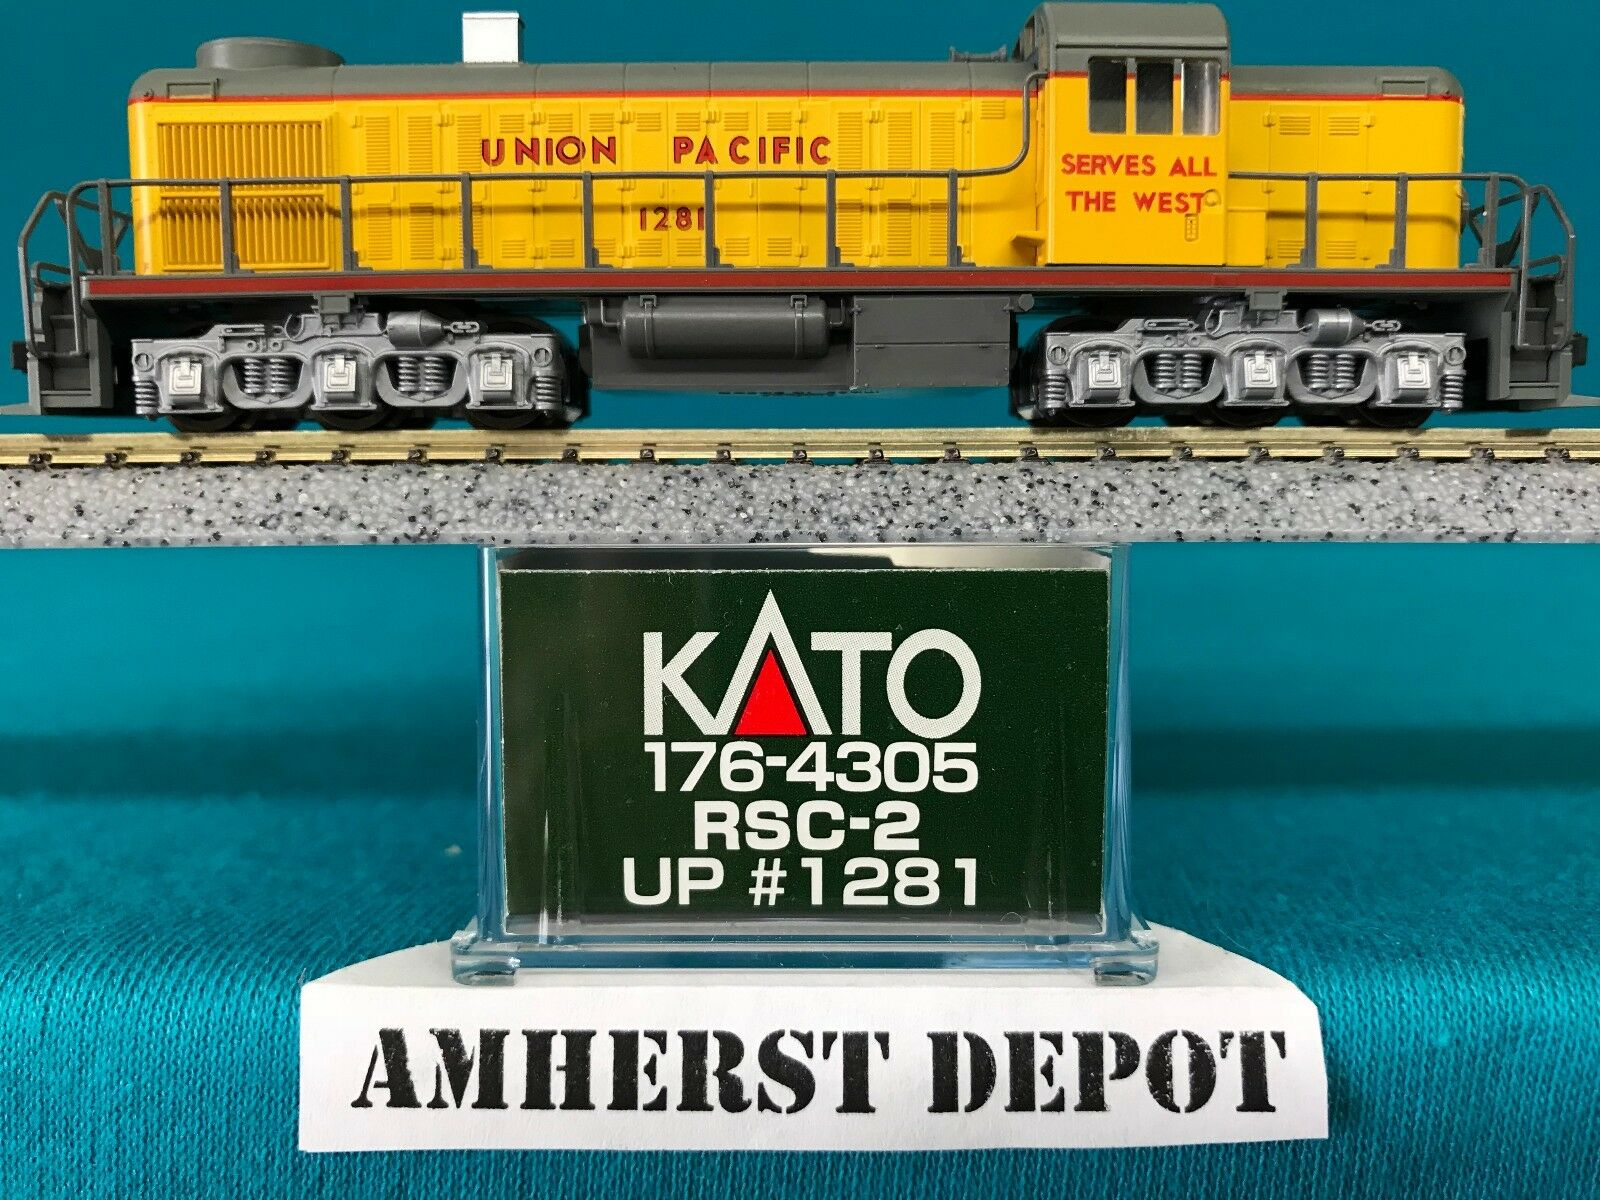 176-4305 Union Pacific UP Kato N Scale RSC-2 Made in Japan NIB